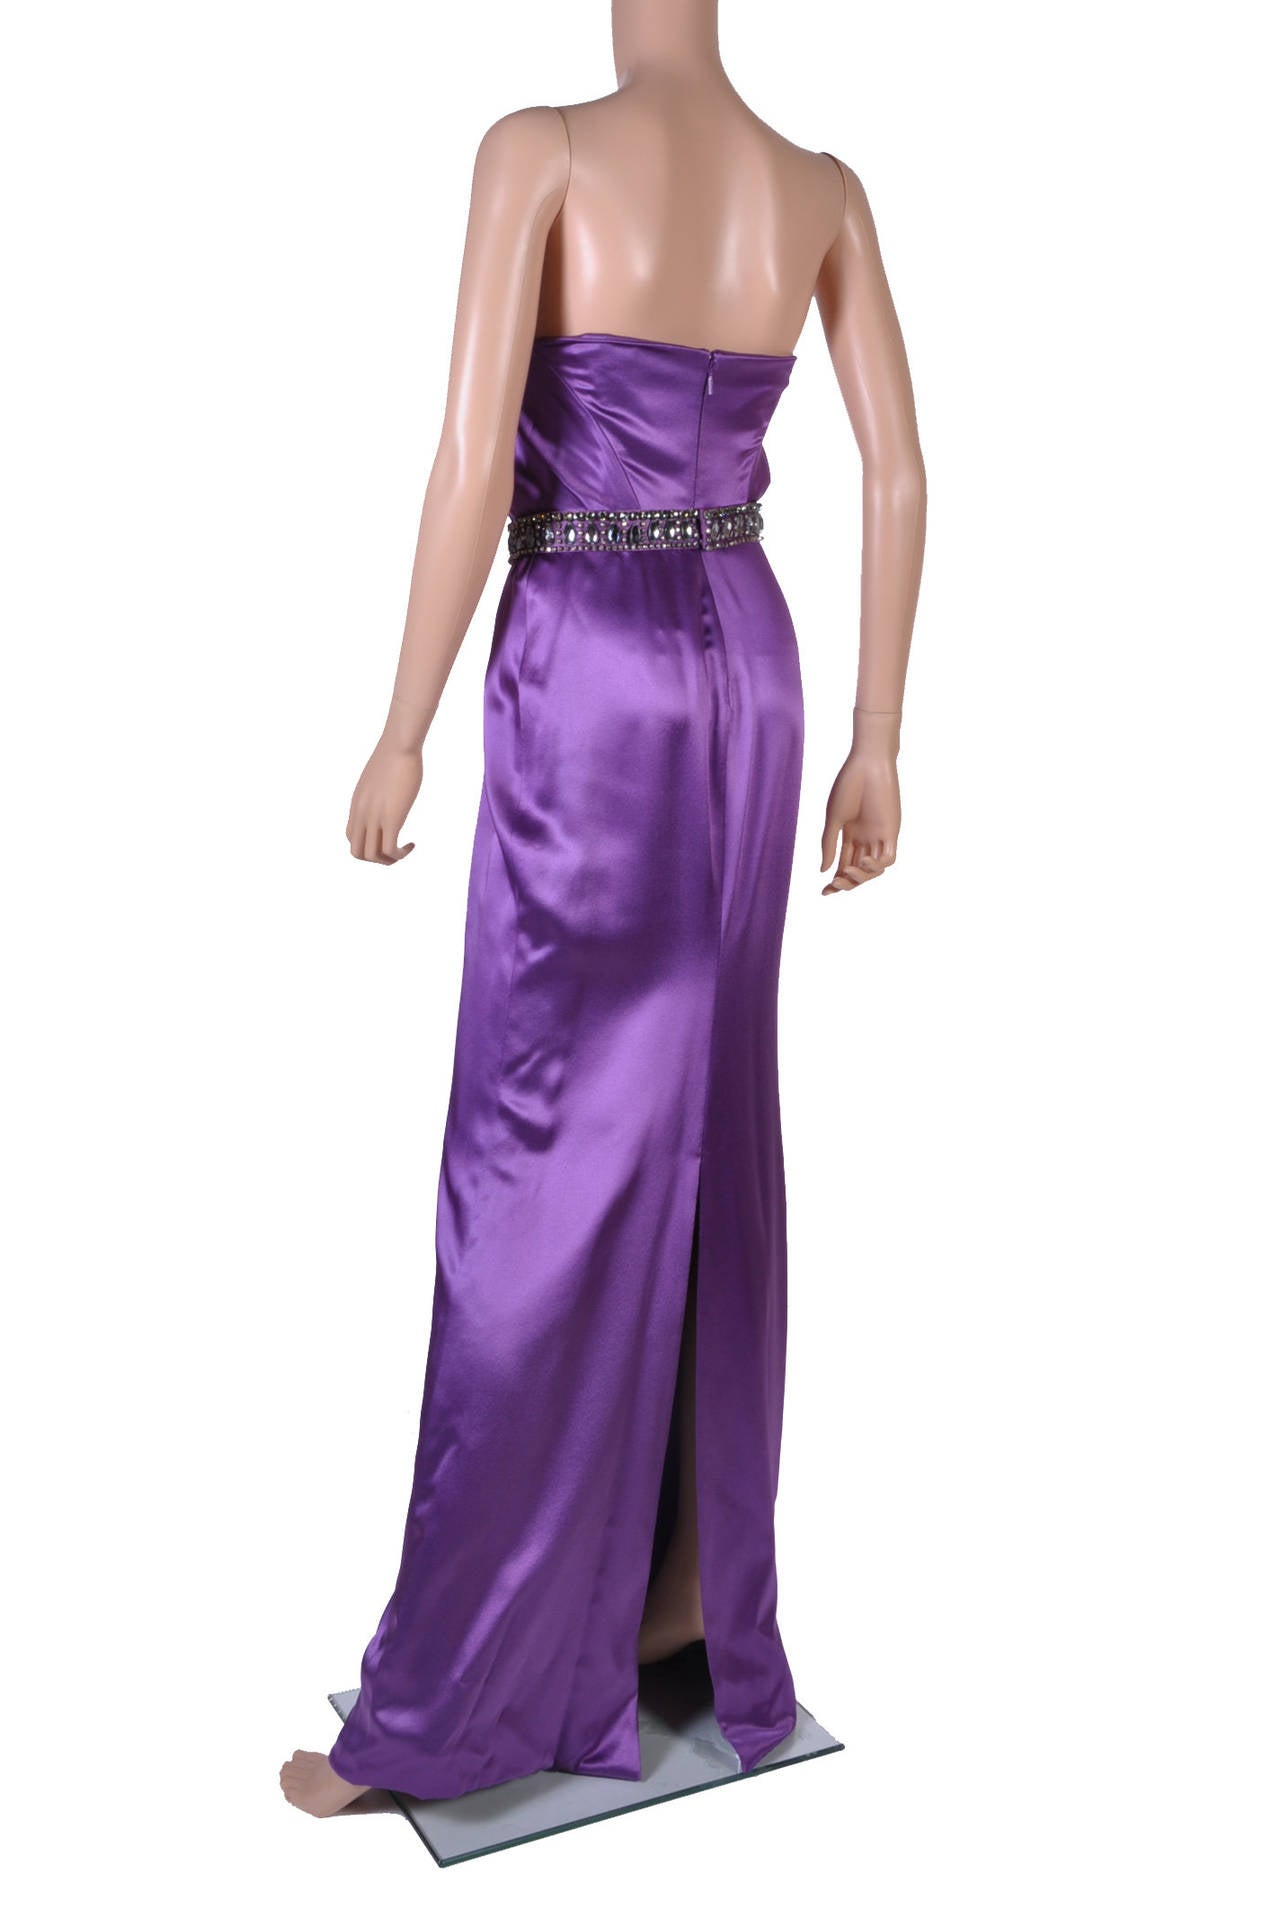 New VERSACE EMBELLISHED PURPLE AMETHYST STRAPLESS GOWN 5